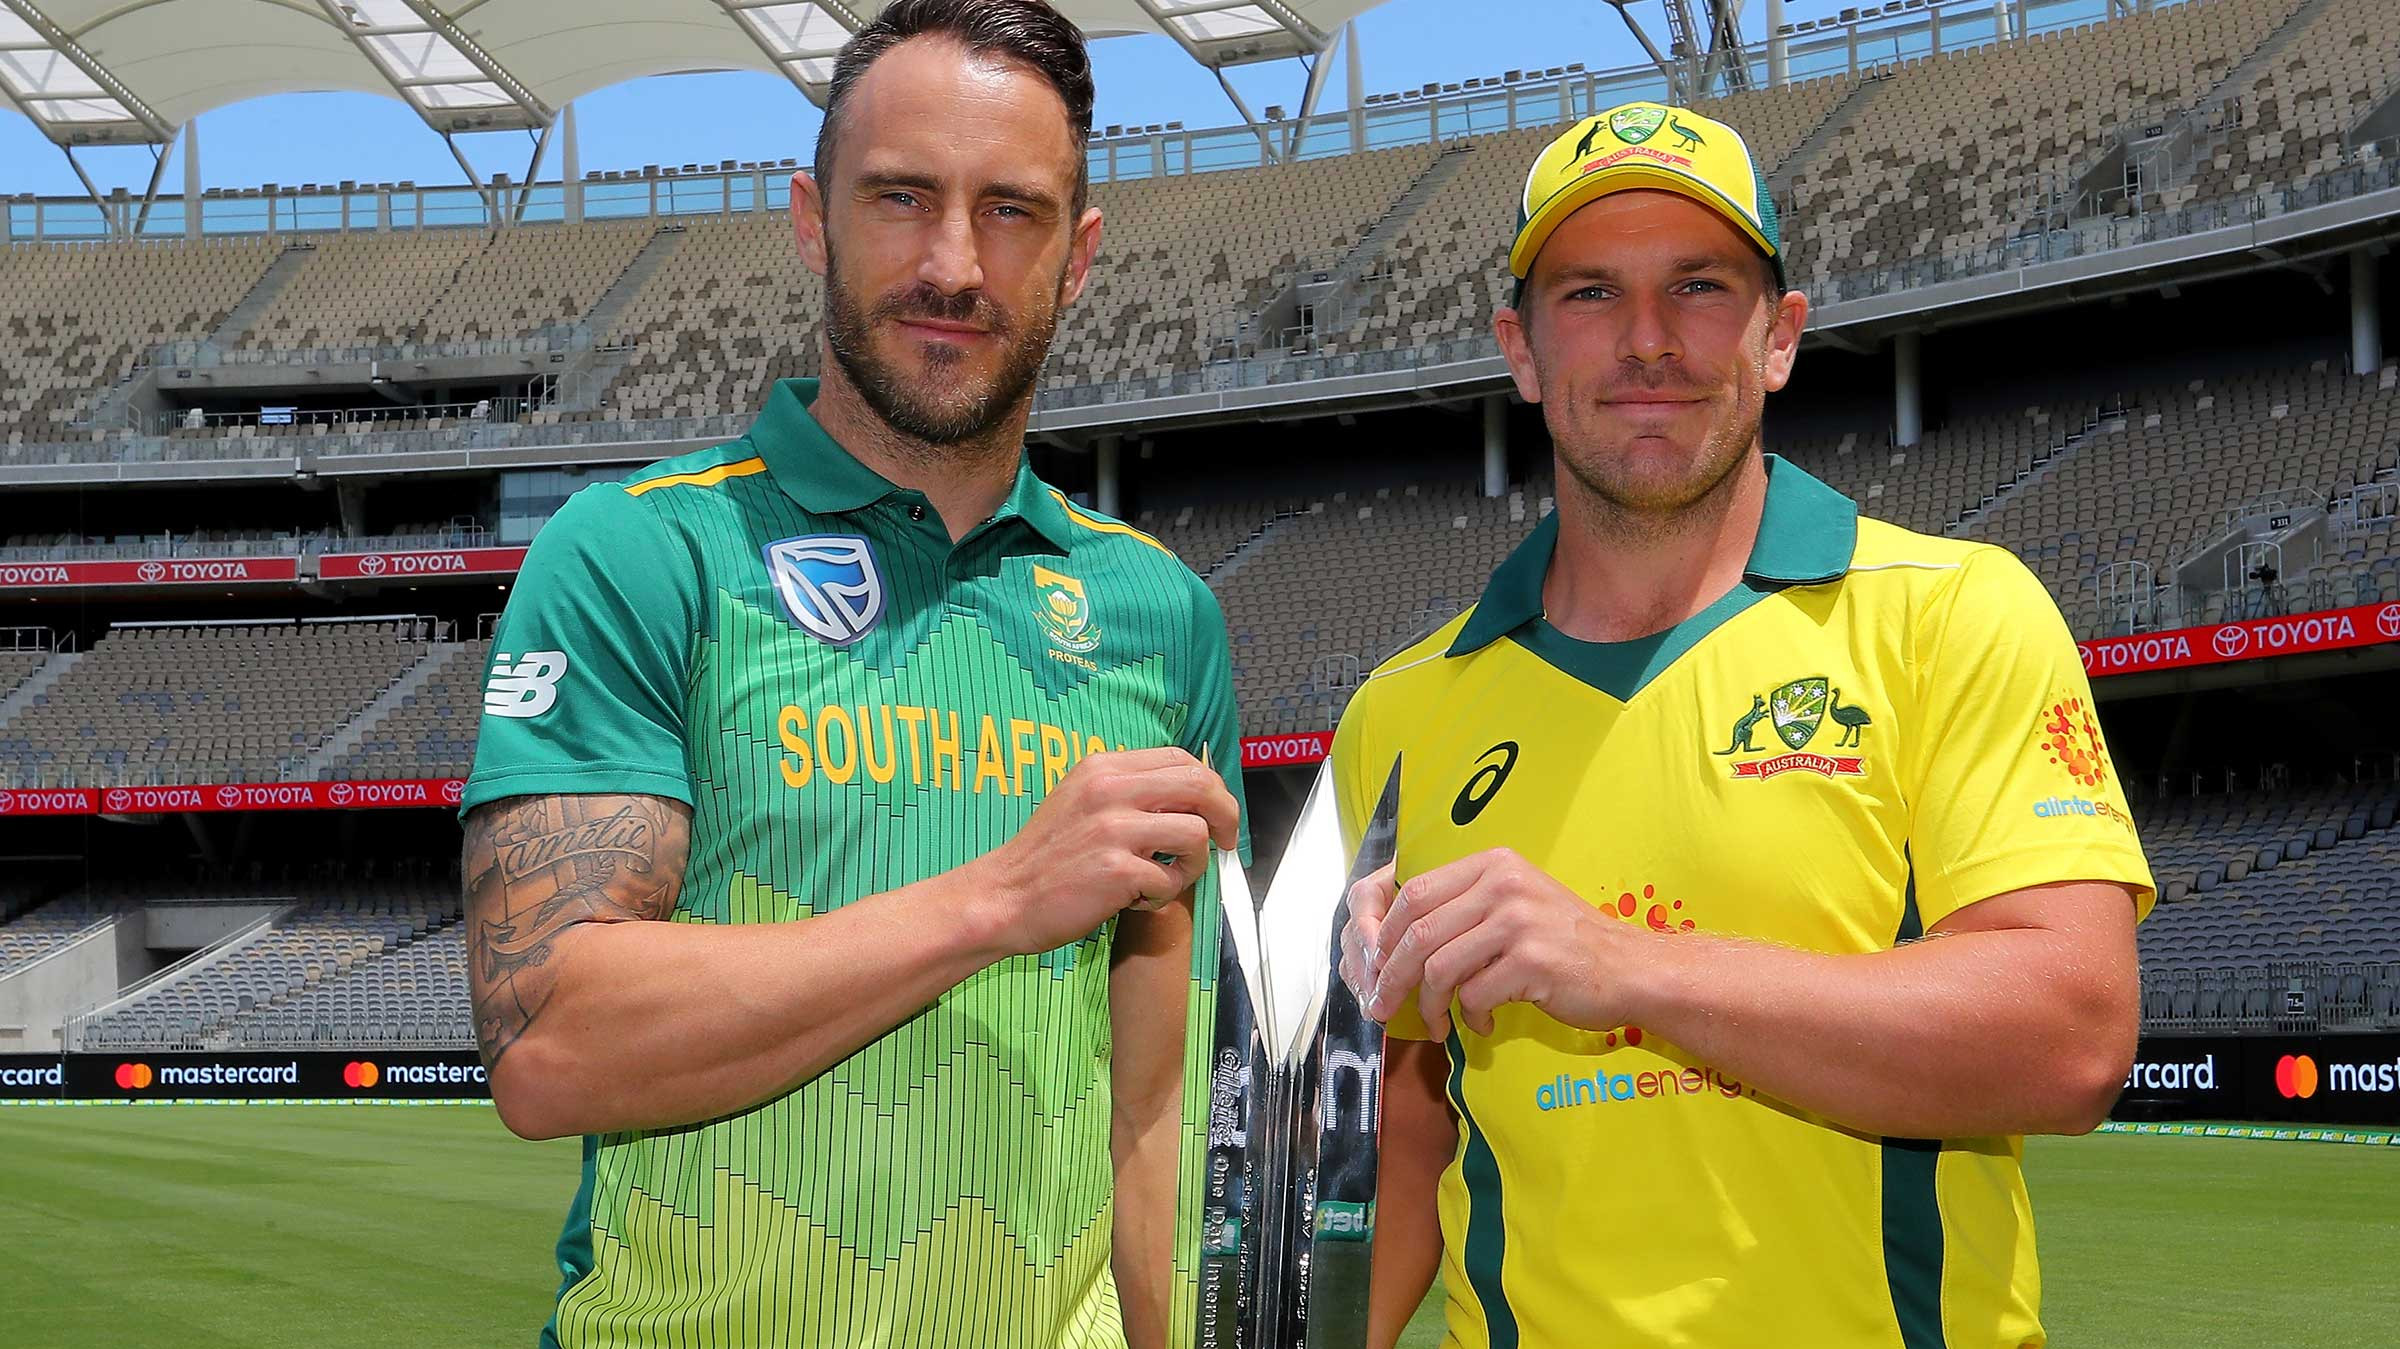 AUS v SA 2018: Aaron Finch refrains from revealing Australia's XI for the first ODI